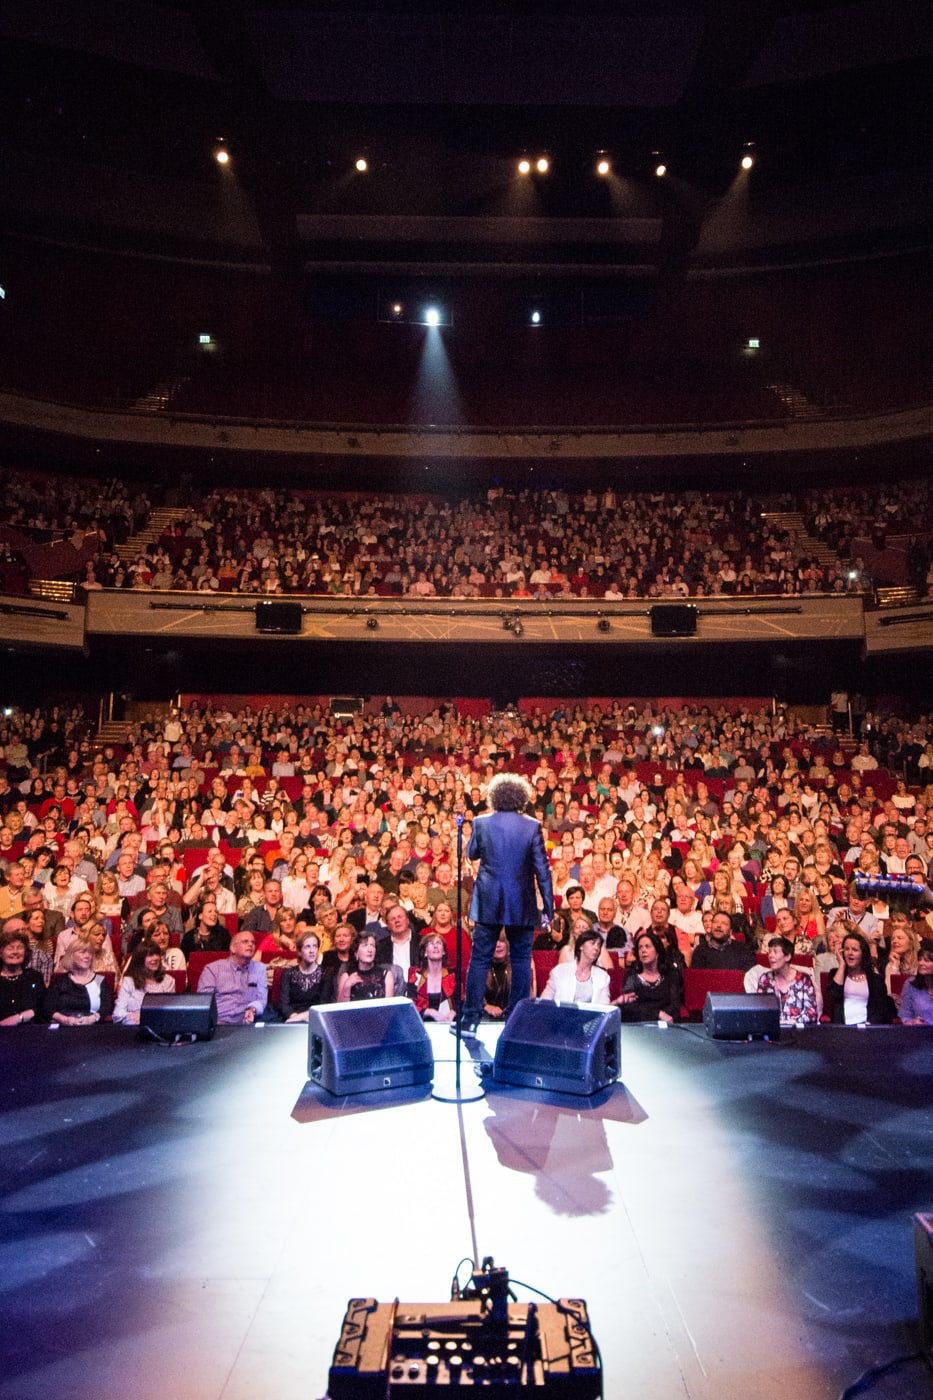 Leo Sayer at Bord Gais Energy Theatre by Sean Smyth (16-10-15) (116 of 129)